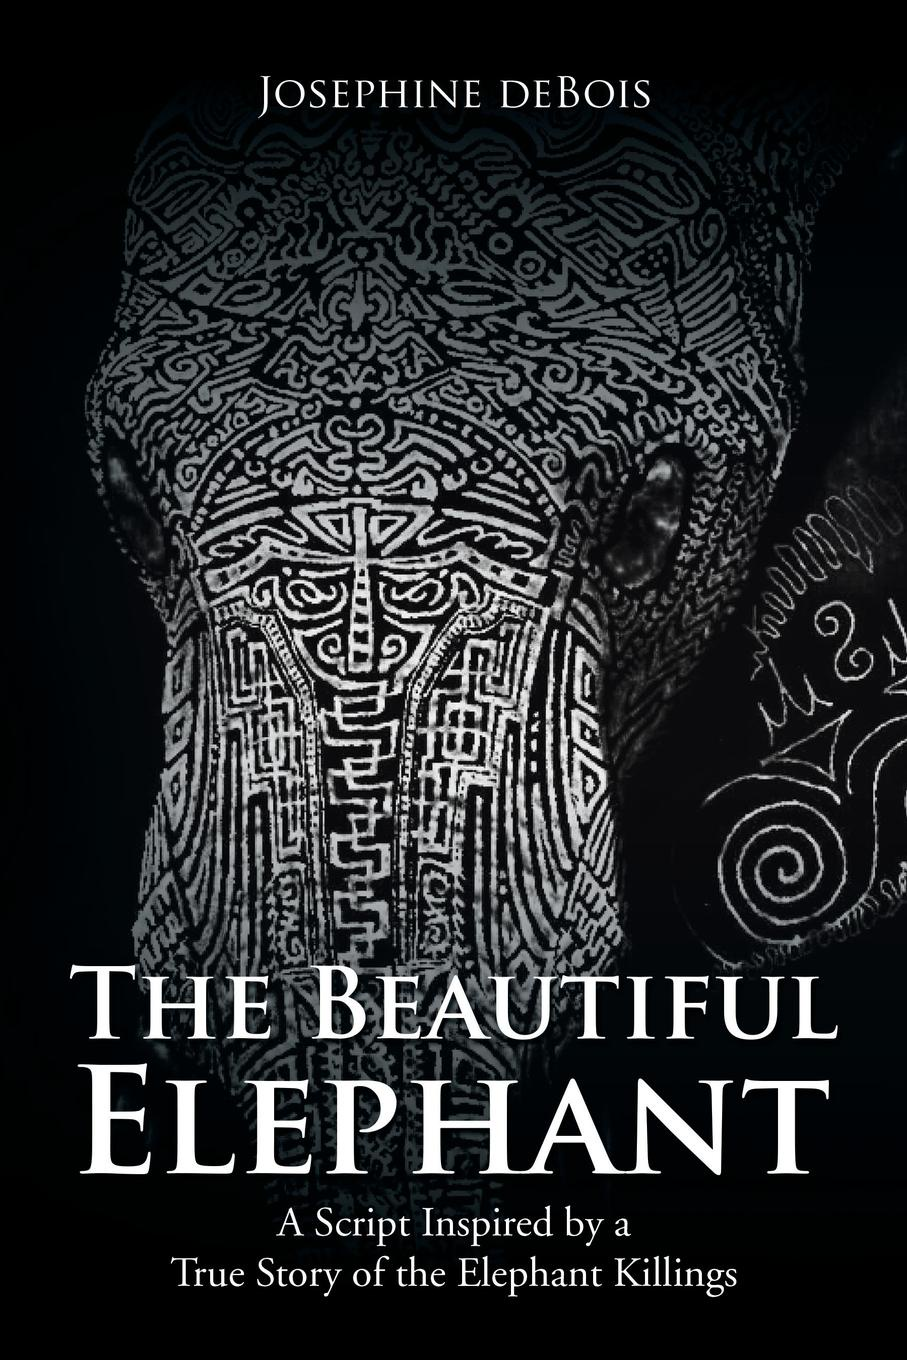 Josephine deBois The Beautiful Elephant. A Script Inspired by a True Story of the Elephant Killings town in a wild moose chase